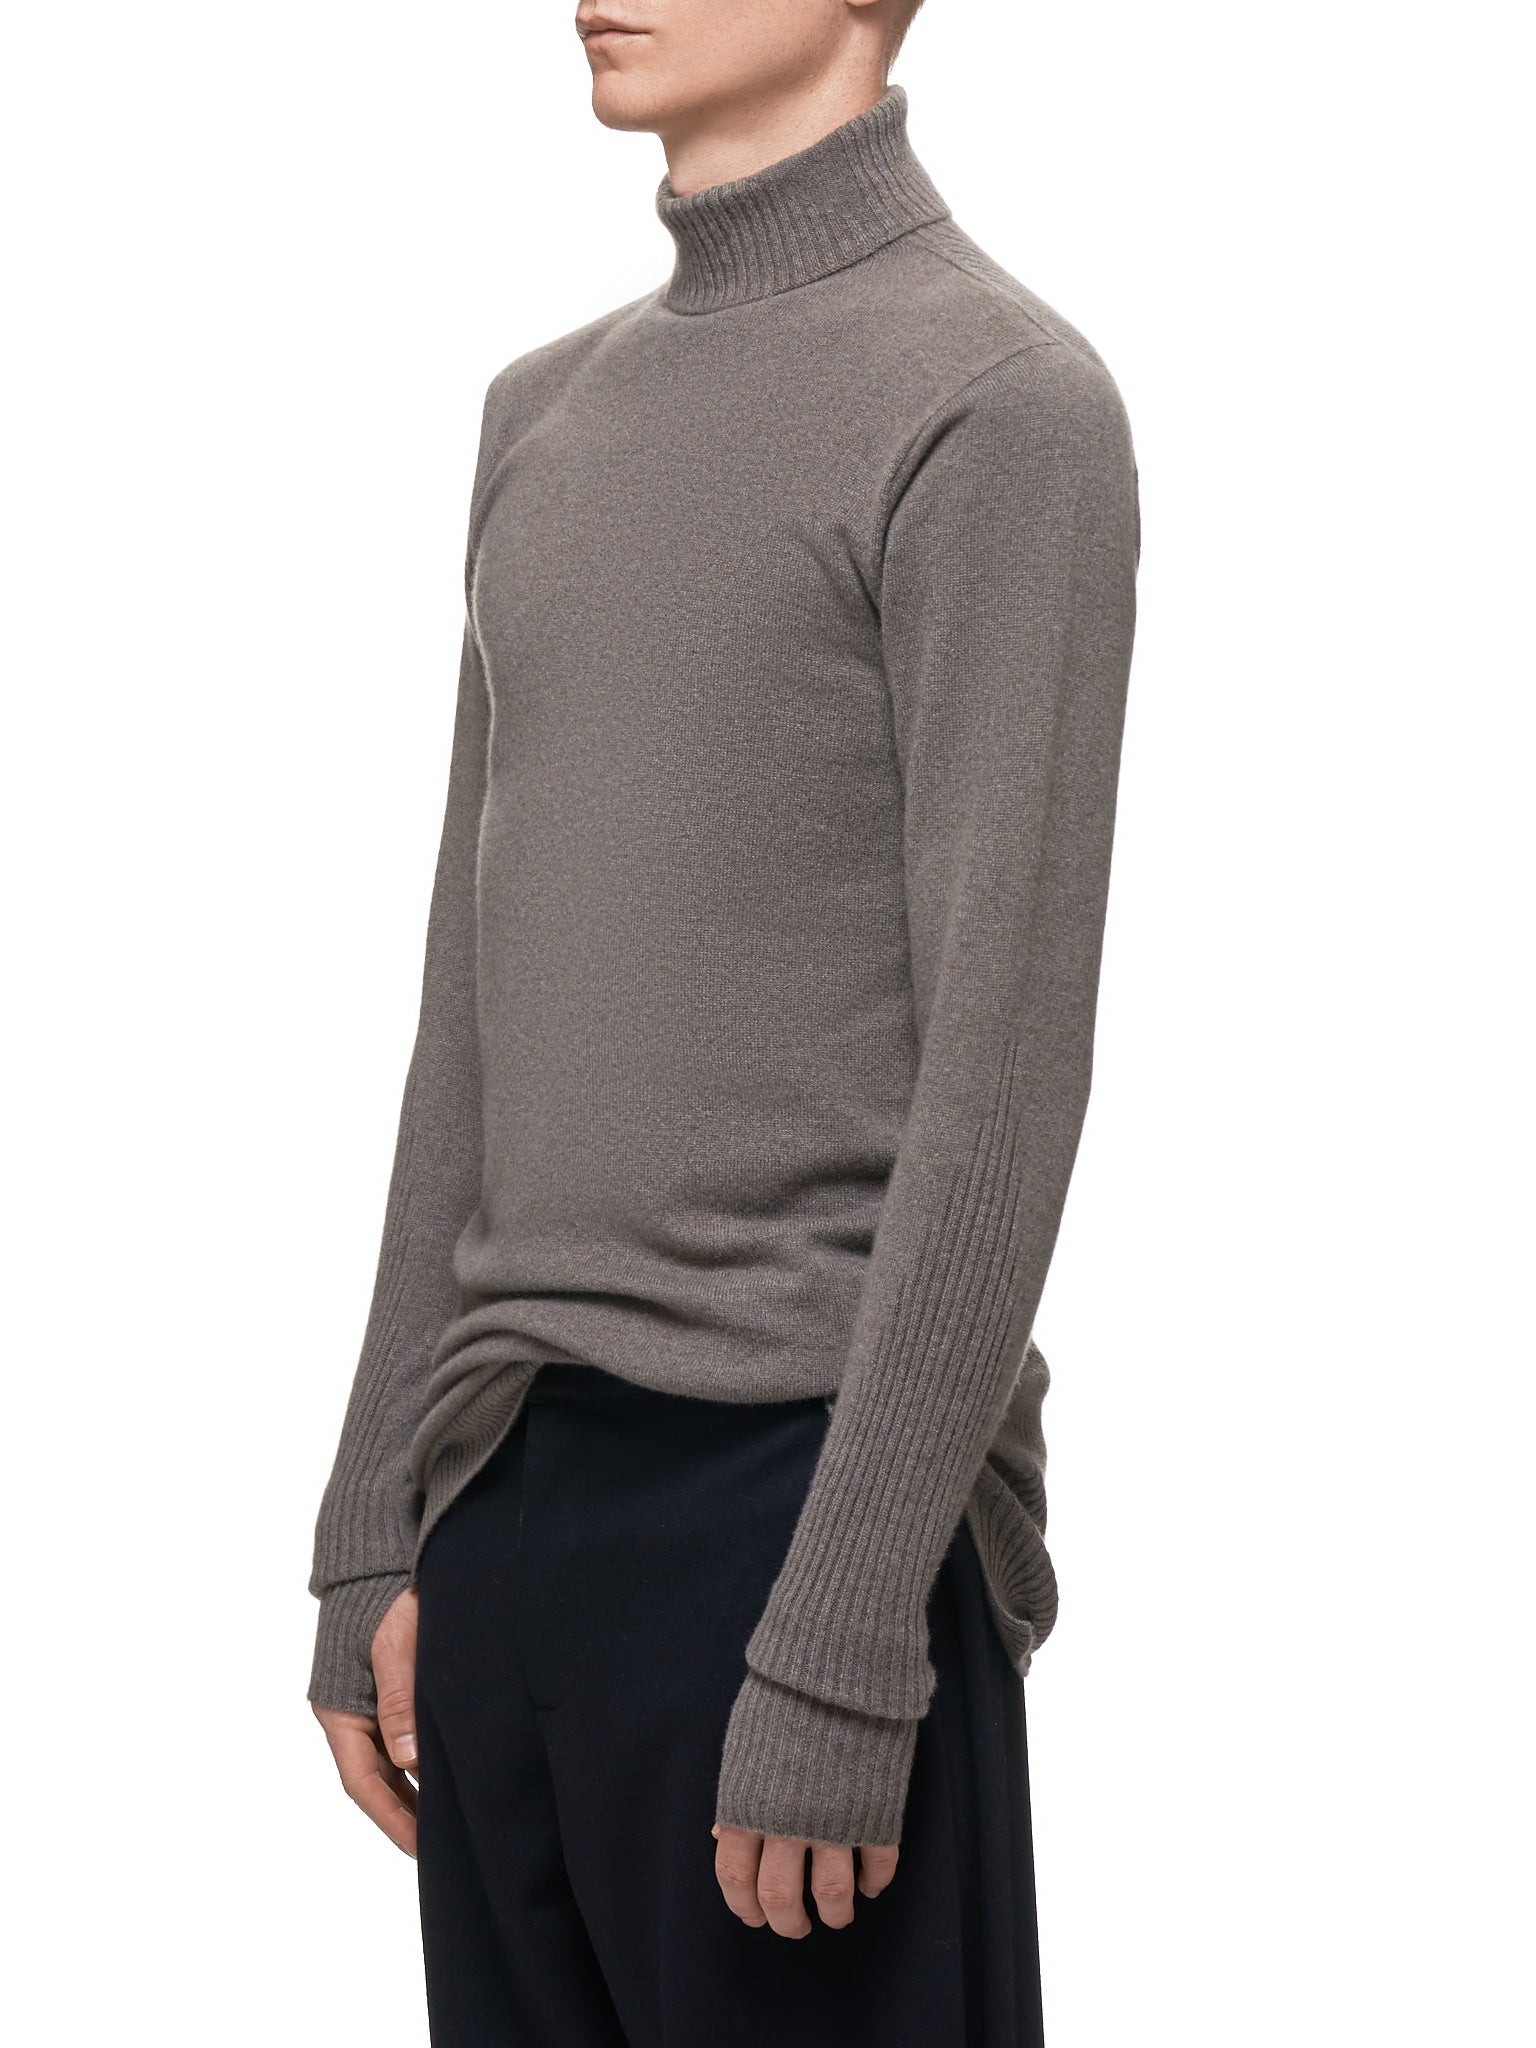 Boris Bidjan Saberi Turtleneck - Hlorenzo Side